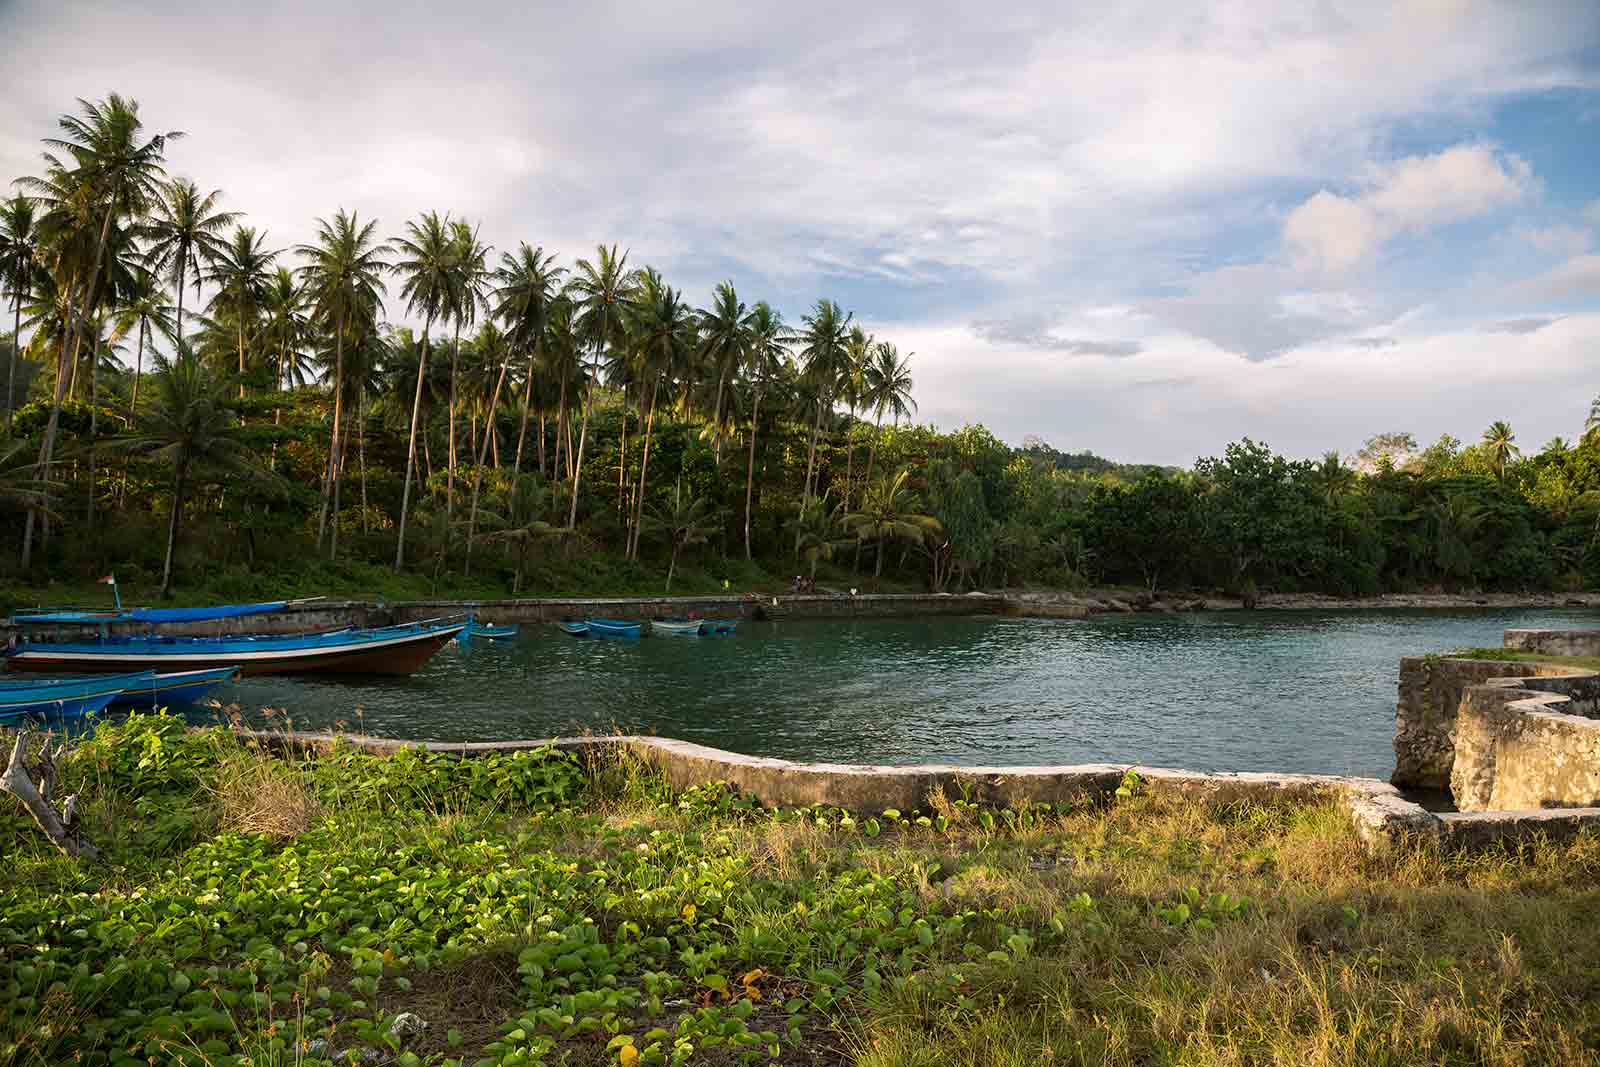 Maluku Islands: Ambon might not be your typical beach paradise, but the islands offers stunning landscape scenes, beautiful markets and crystal clear waters.